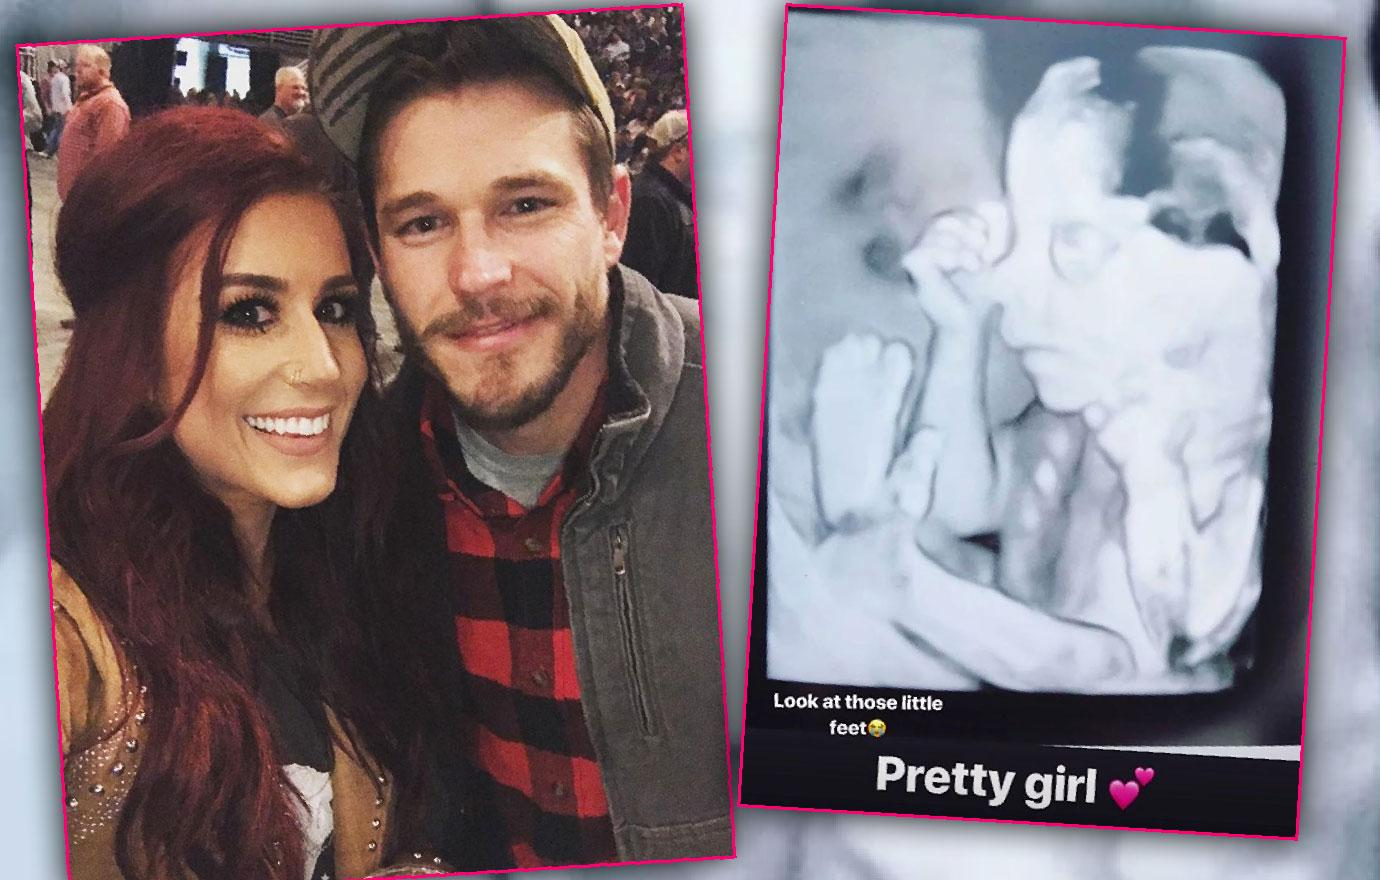 Chelsea Houska Posts Ultrasound Baby Pic After Adam Lind Scandal